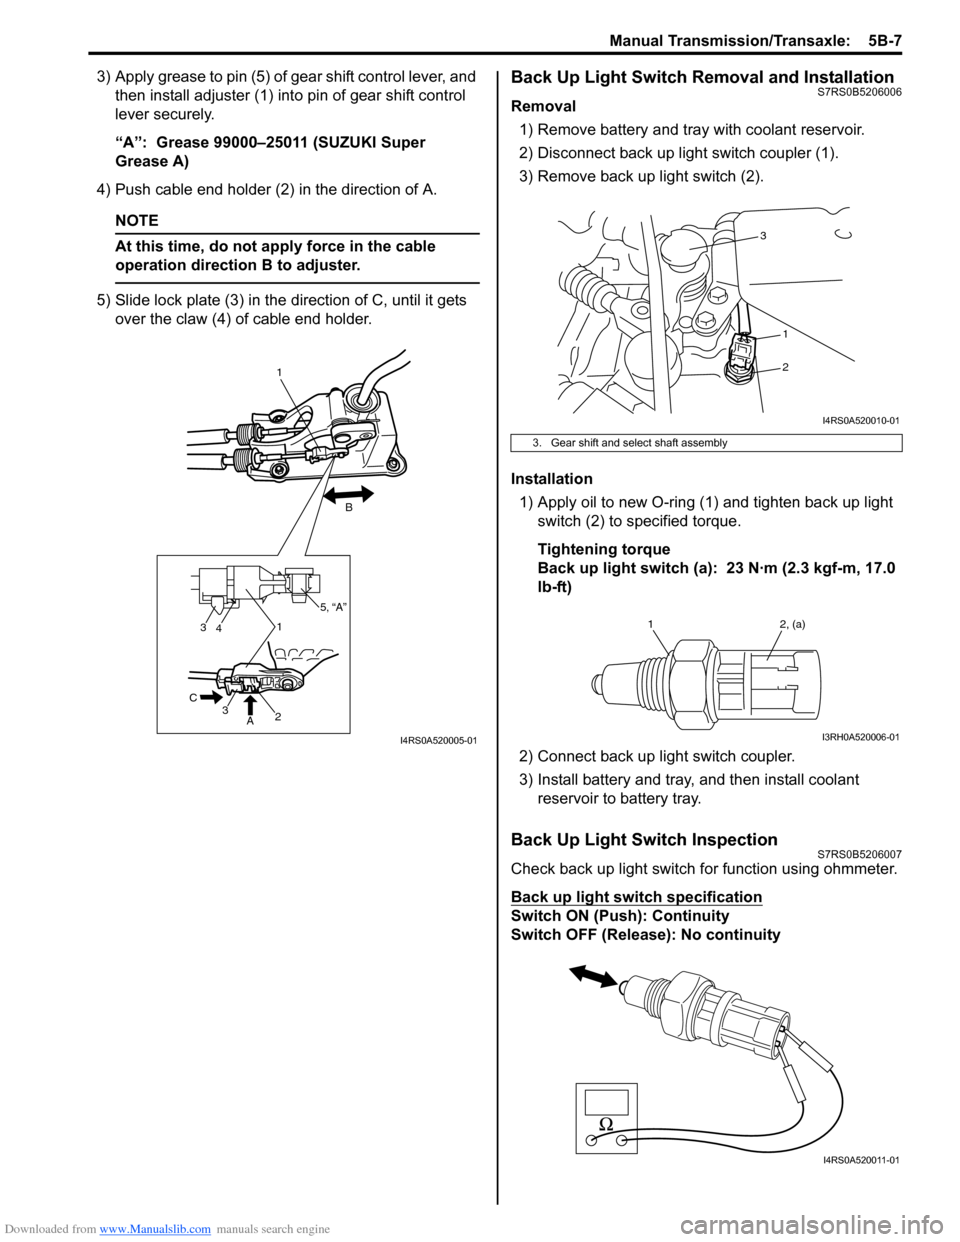 SUZUKI SWIFT 2006 2.G Service Workshop Manual Downloaded from www.Manualslib.com manuals search engine Manual Transmission/Transaxle:  5B-7 3) Apply grease to pin (5) of gear shift control lever, and then install adjuster (1) into pin of gear shi